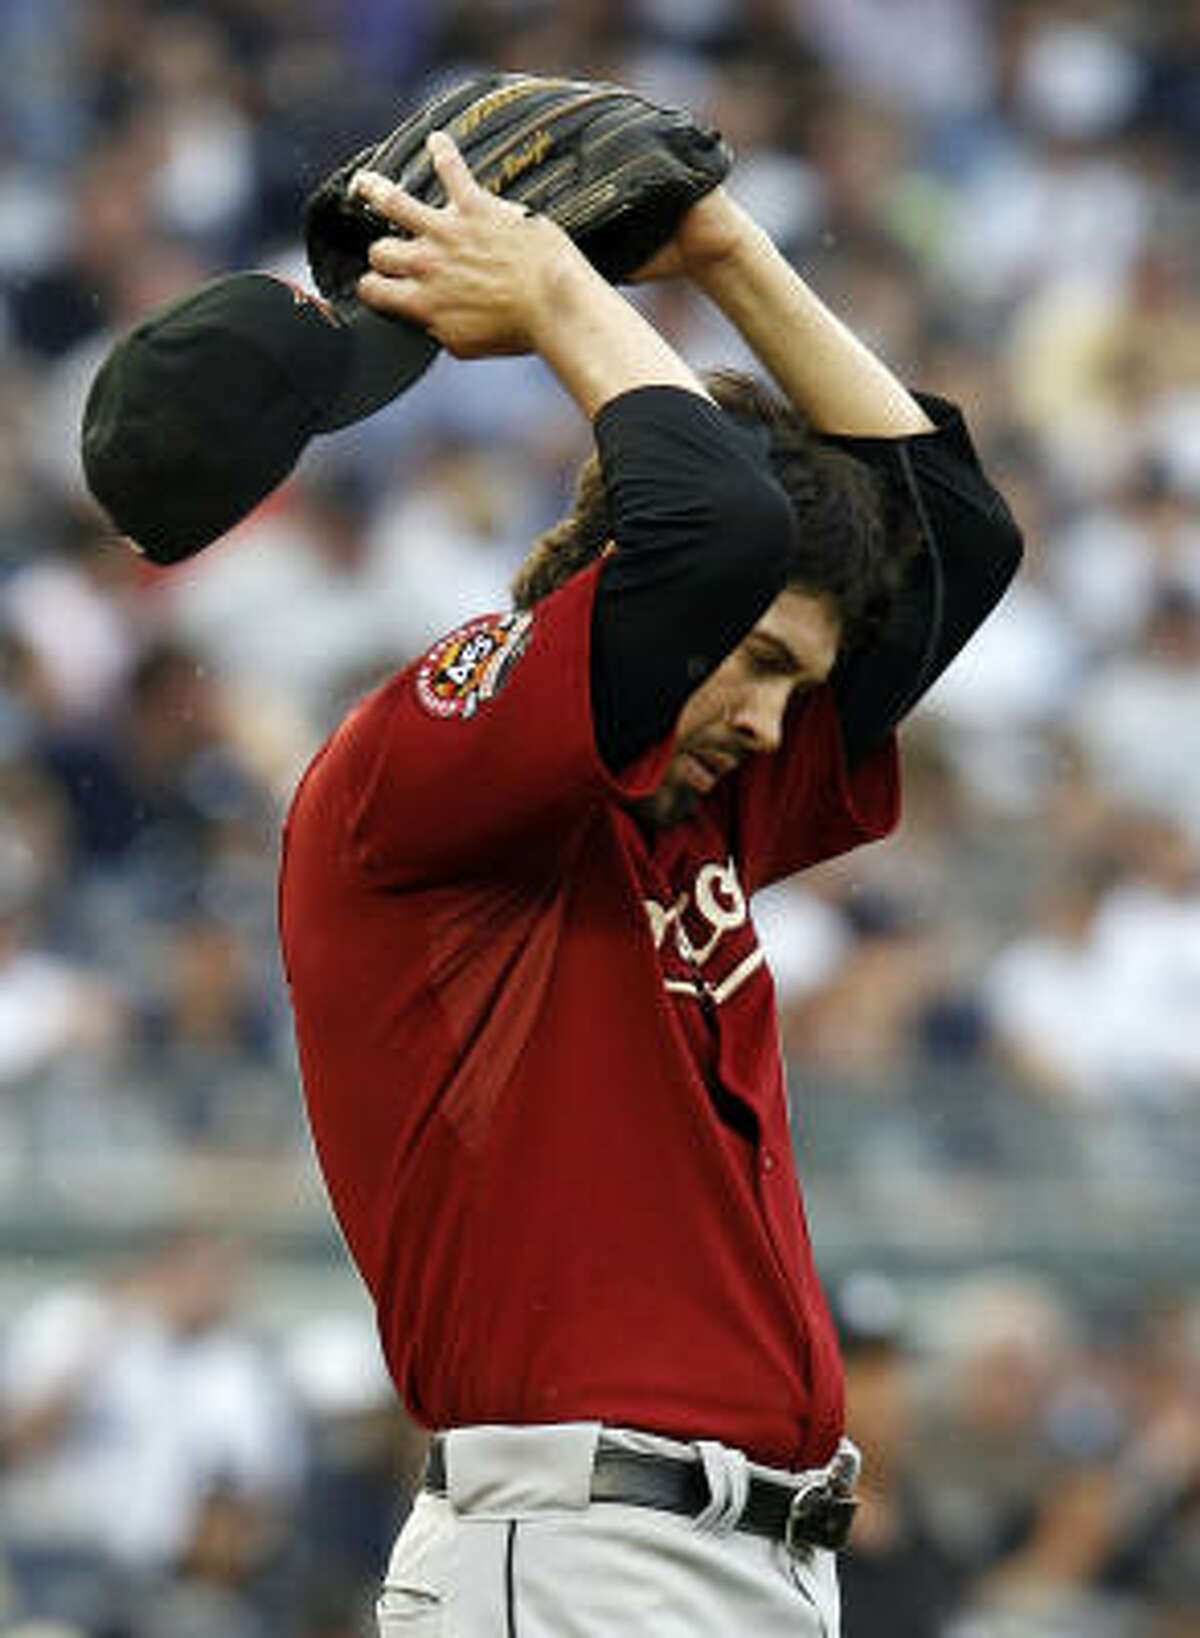 Astros reliever Casey Daigle reacts on the mound after giving up a fifth-inning grand slam to Jorge Posada, the first batter he faced.